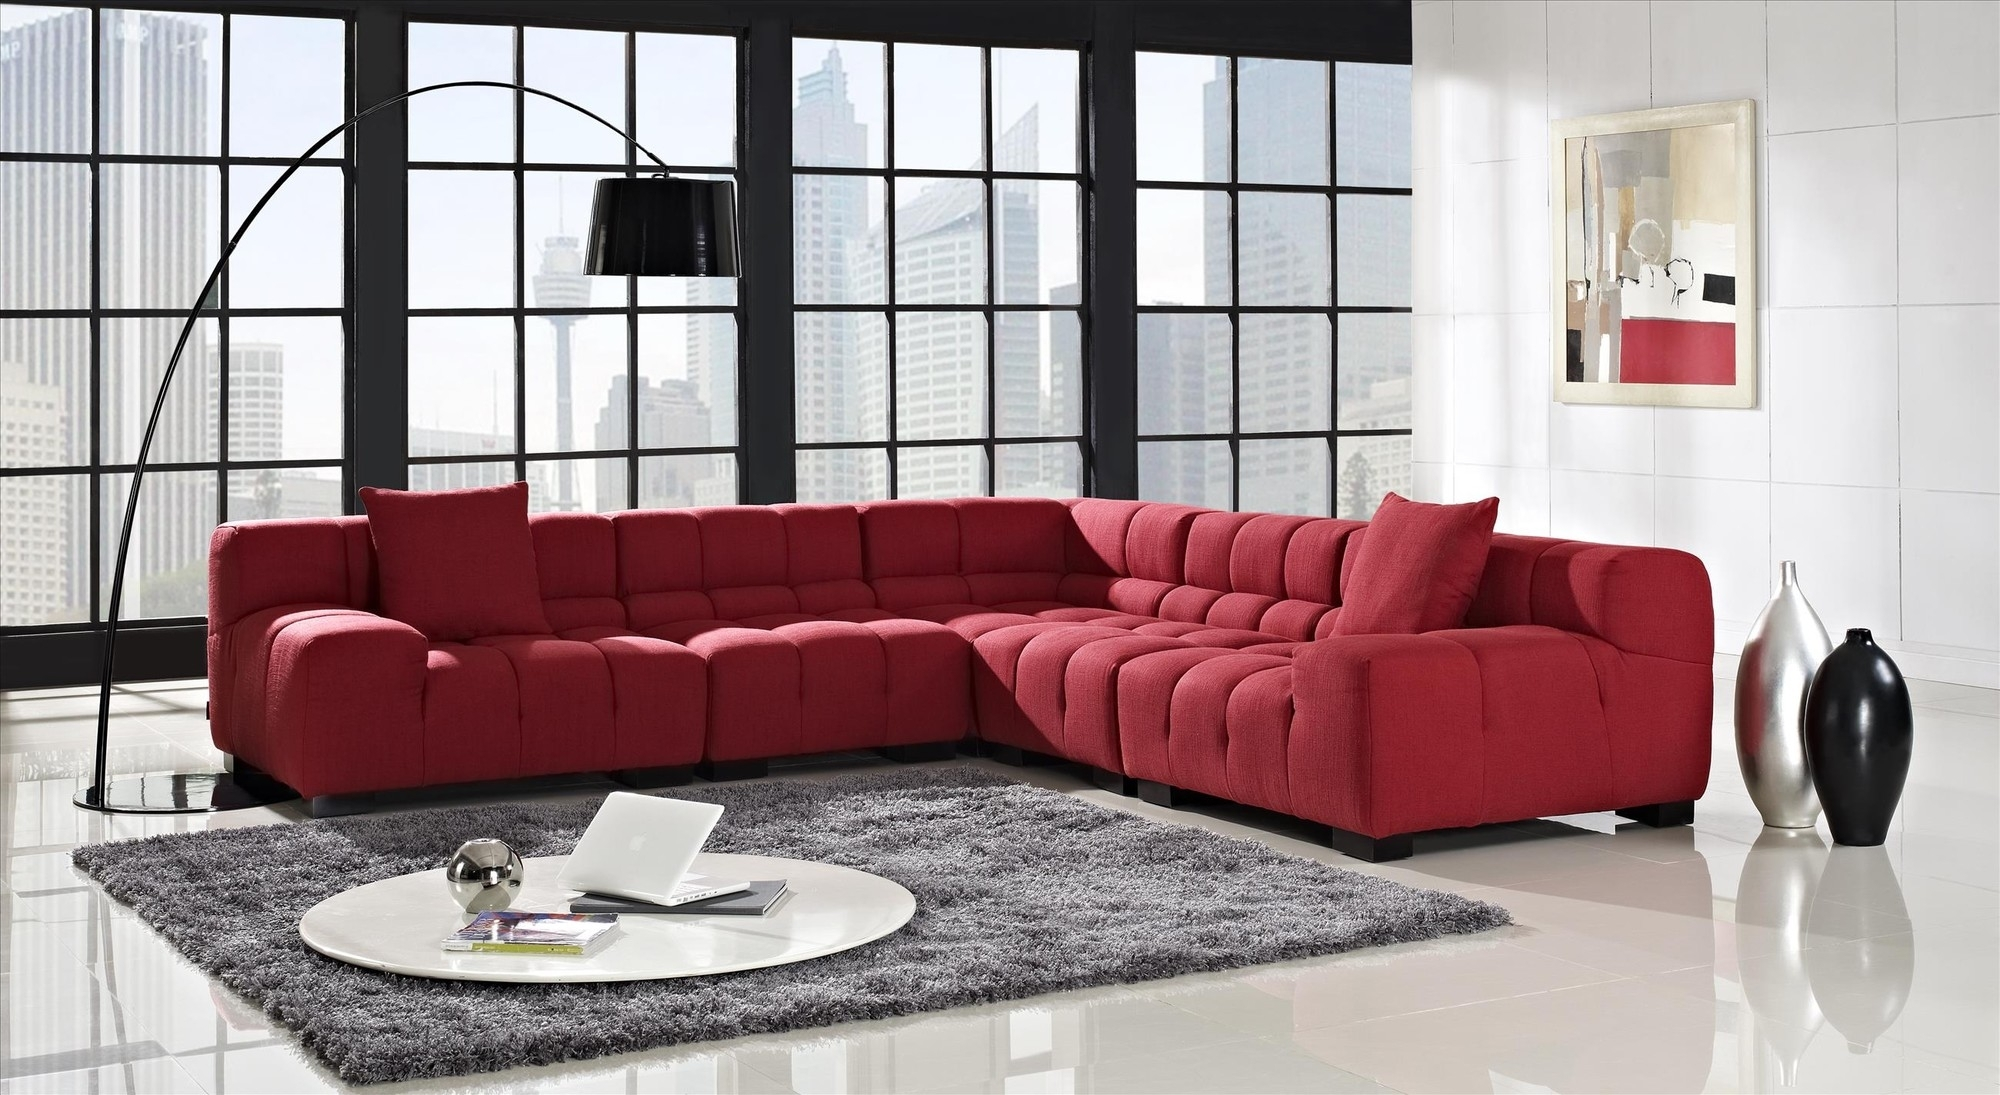 Sofa Modular Sectionalas Black Leather Piece Costco Red Sectional Pertaining To Canada Sectional Sofas For Small Spaces (Image 10 of 10)